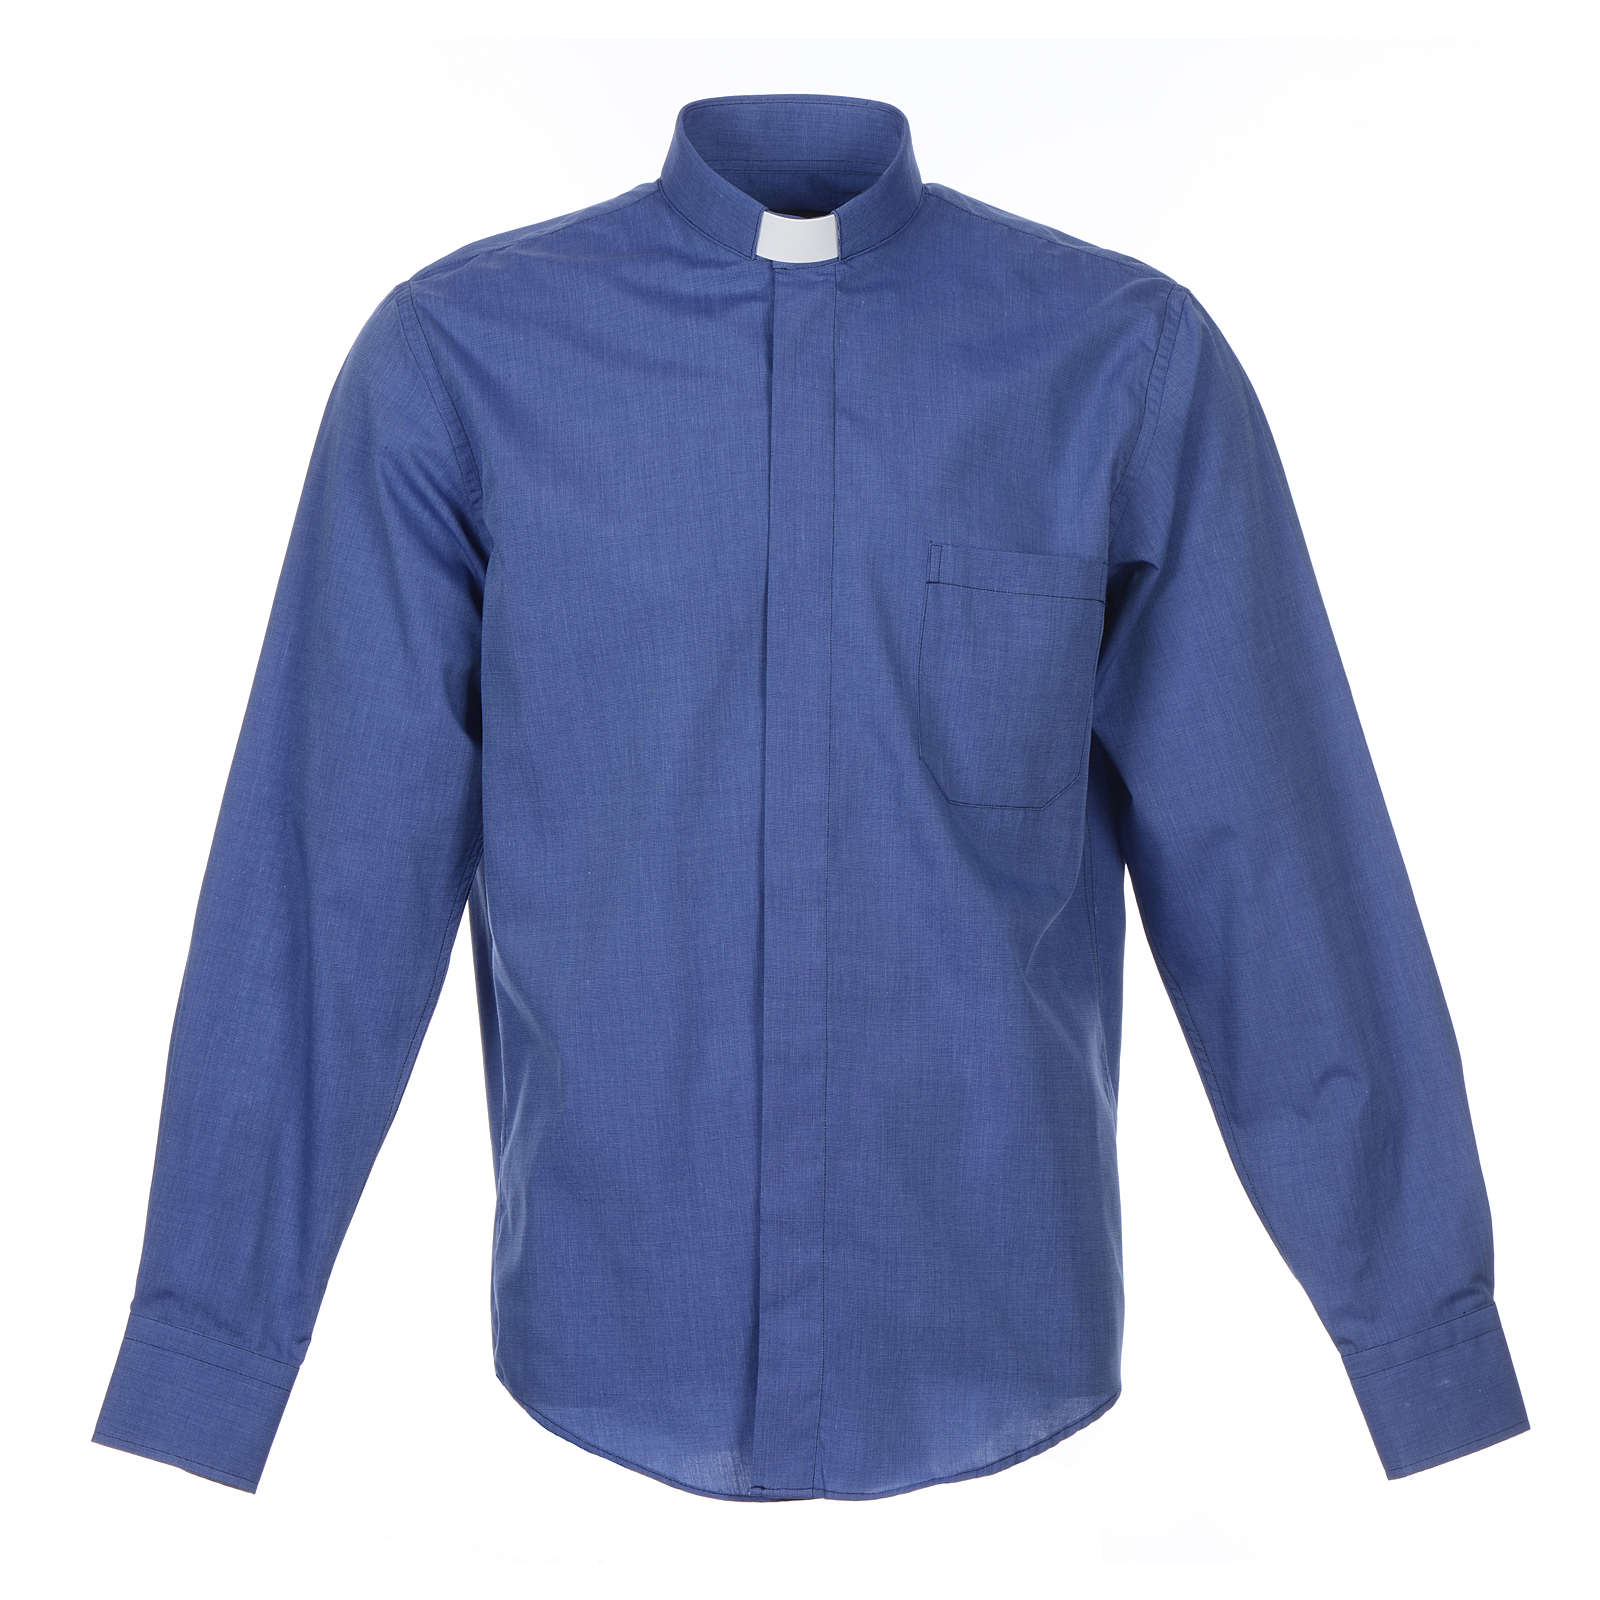 Long-sleeve clergy shirt fil-à-fil mixed cotton, blue 4